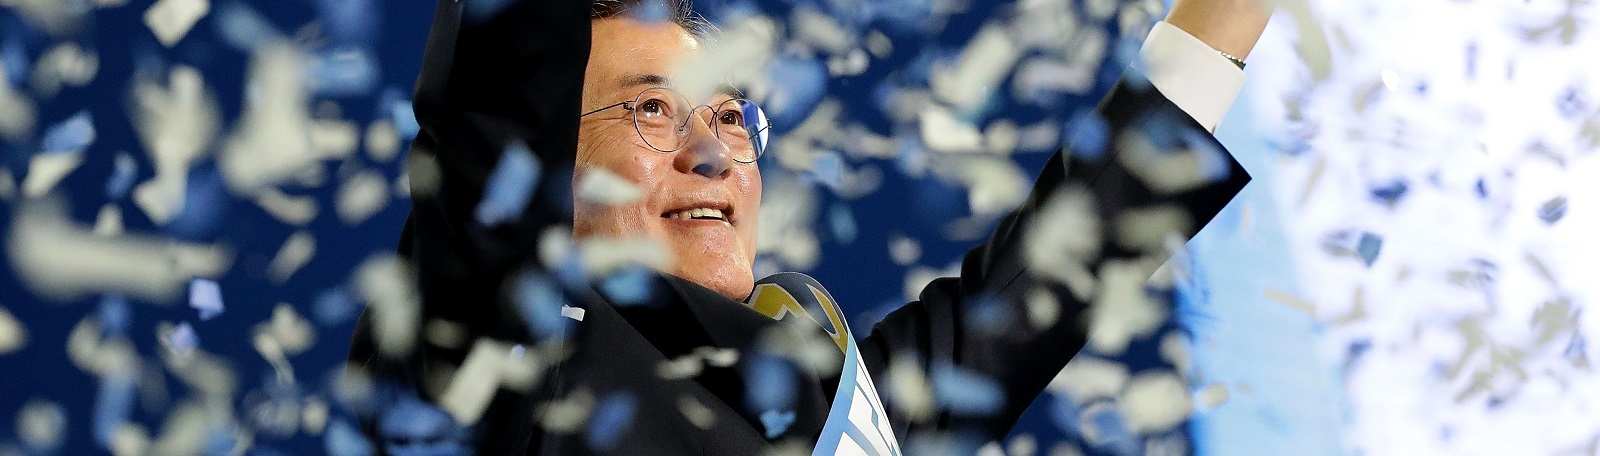 Moon Jae-In, presidential election candidate for the Democratic Party of Korea Photo: Chung Sung-Jun/Getty Images